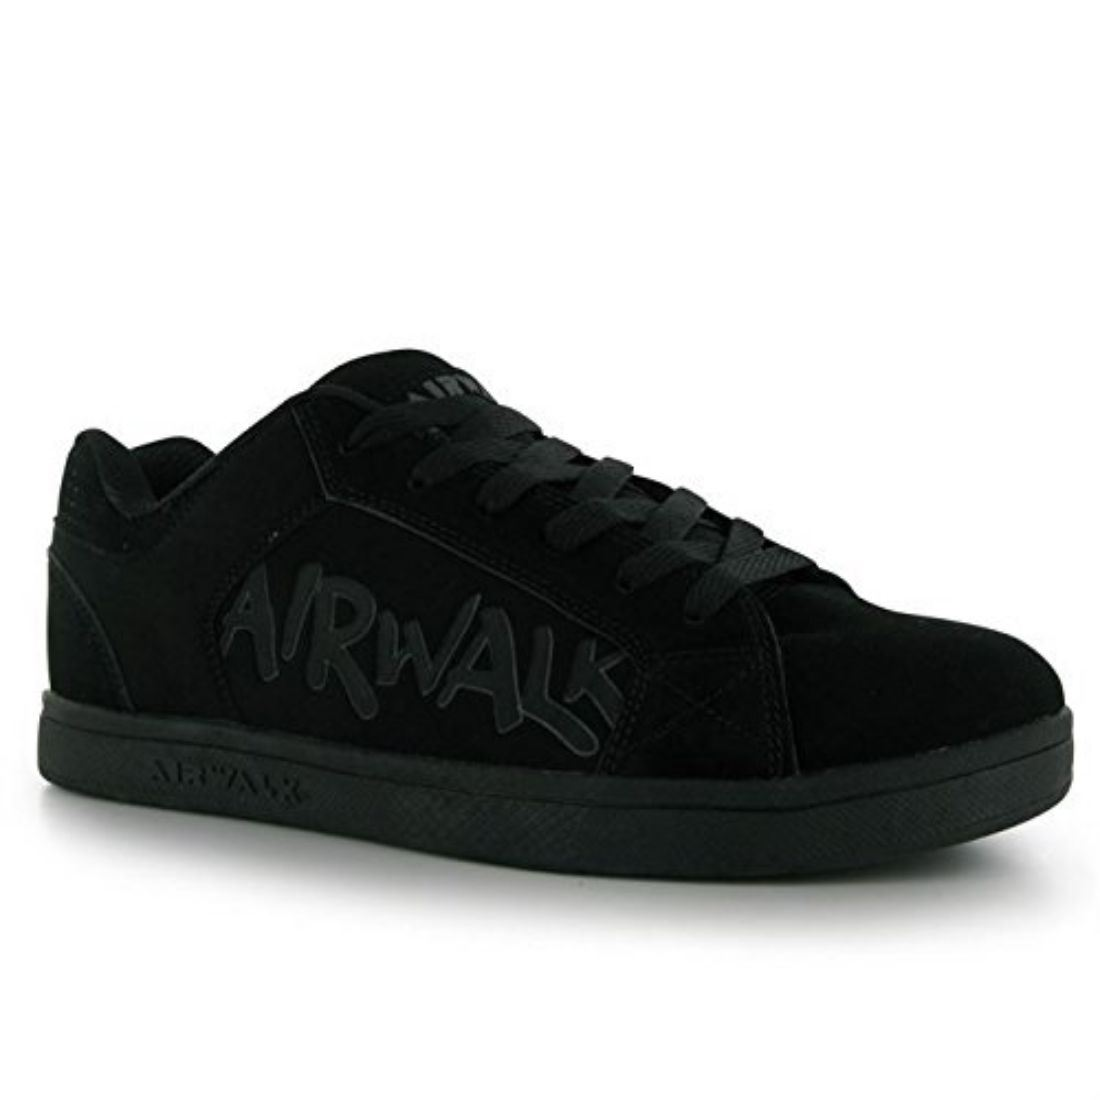 Airwalk Mens Neptune Skate Shoes Lace Up Sport Trainers Faux Suede Footwear